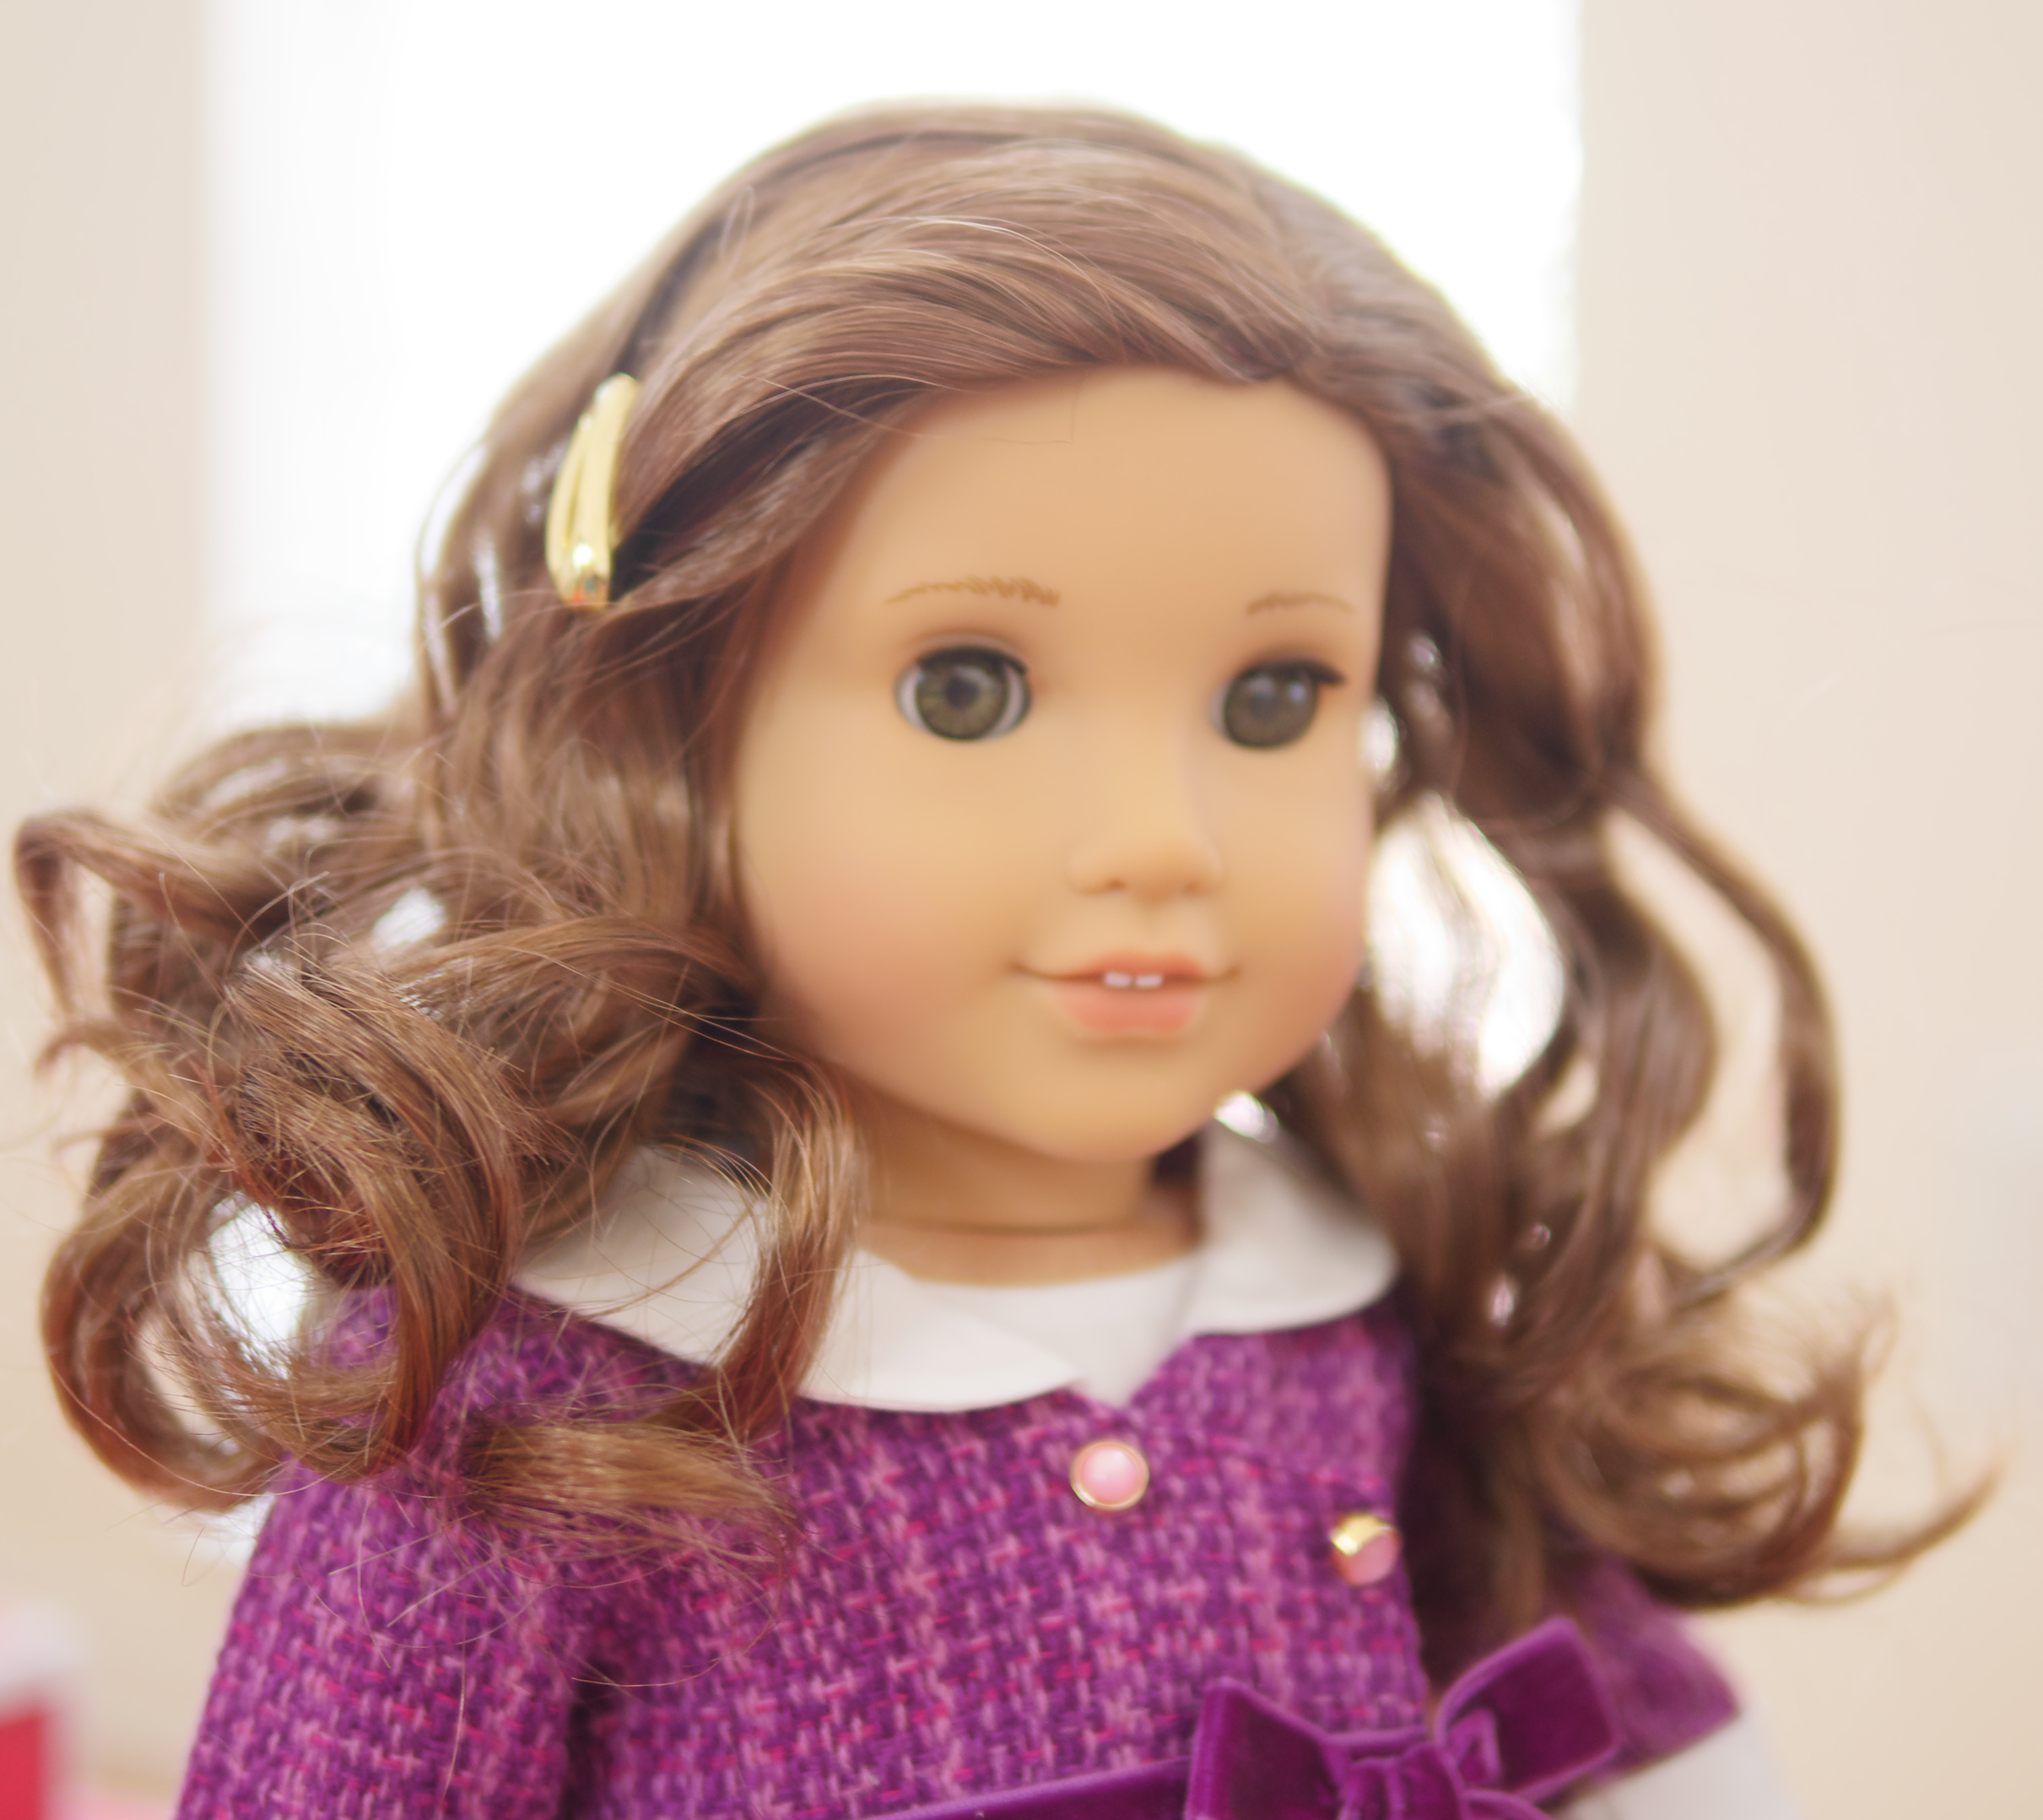 American Girl Movie Premiere & Rebecca Rubin Doll GIVEAWAY! - Theresa's Reviews and The Sammie and Georgie show are giving away one gift to one lucky winner! This person will receive the Rebecca Rubin doll, accessories, two books, and the movie premiere outfit.